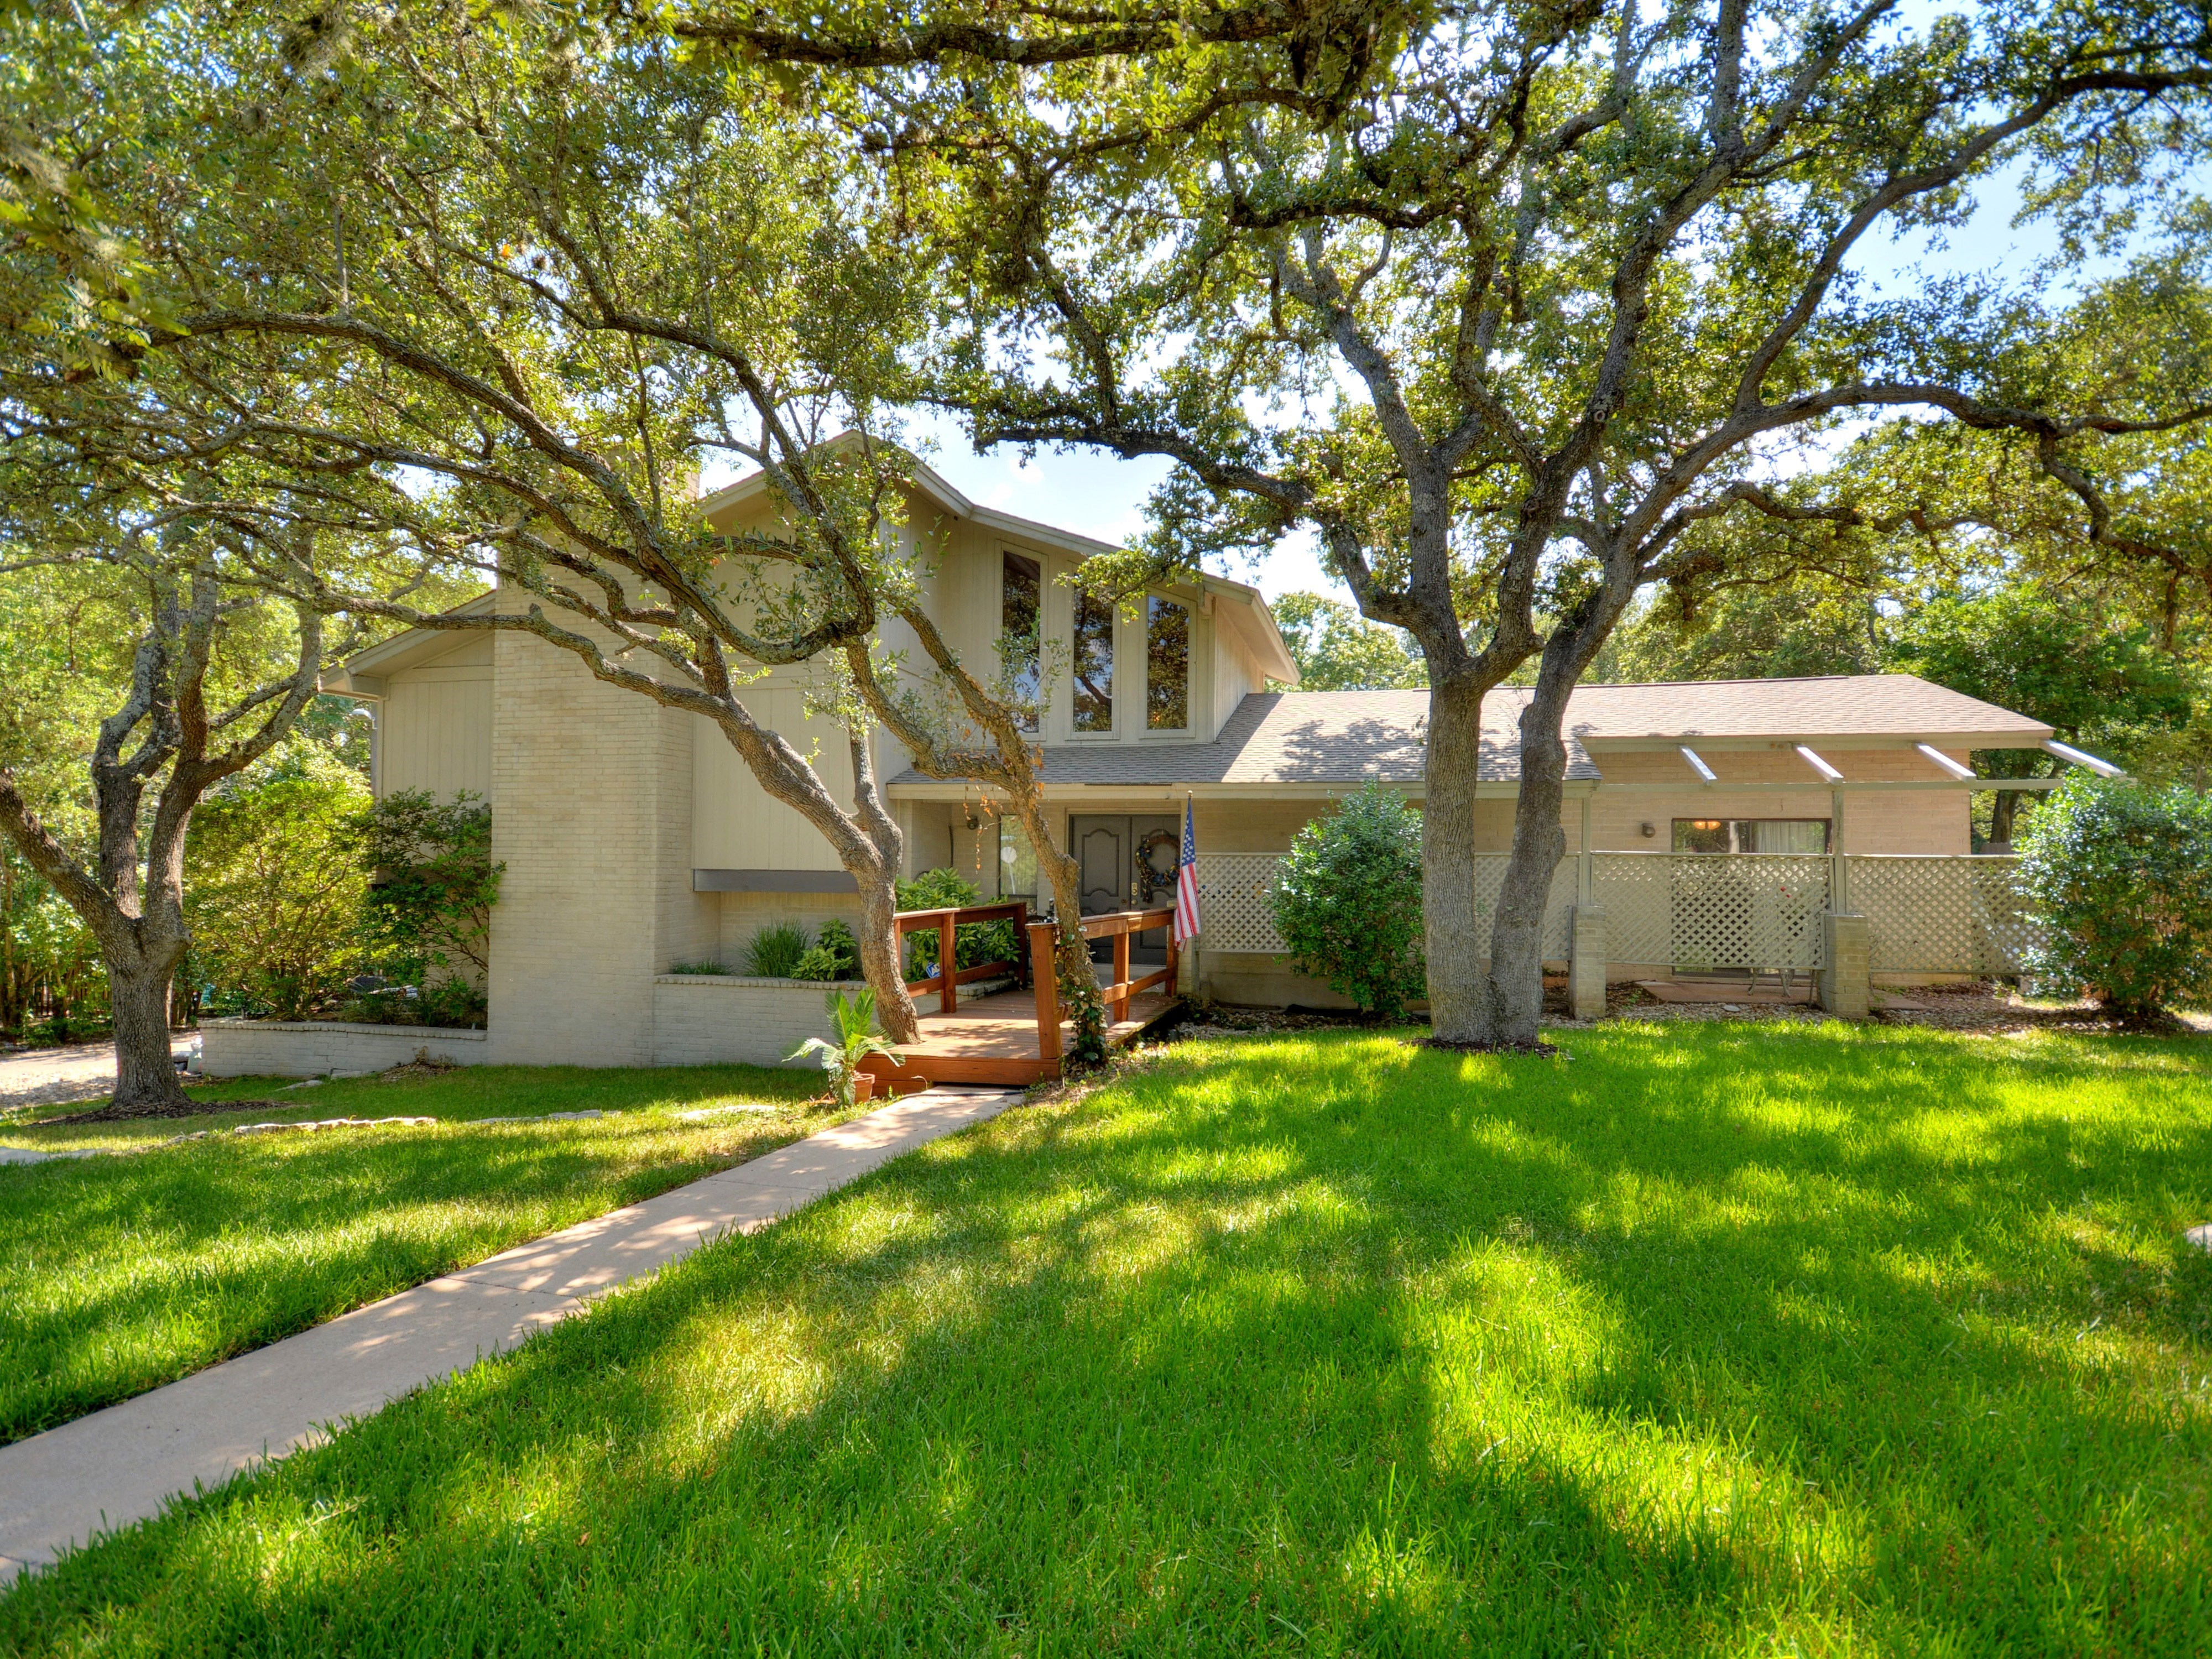 Single Family Home for Sale at One and a Half Story Home Overlooking Hill Country 11500 Spicewood Pkwy Austin, Texas 78750 United States